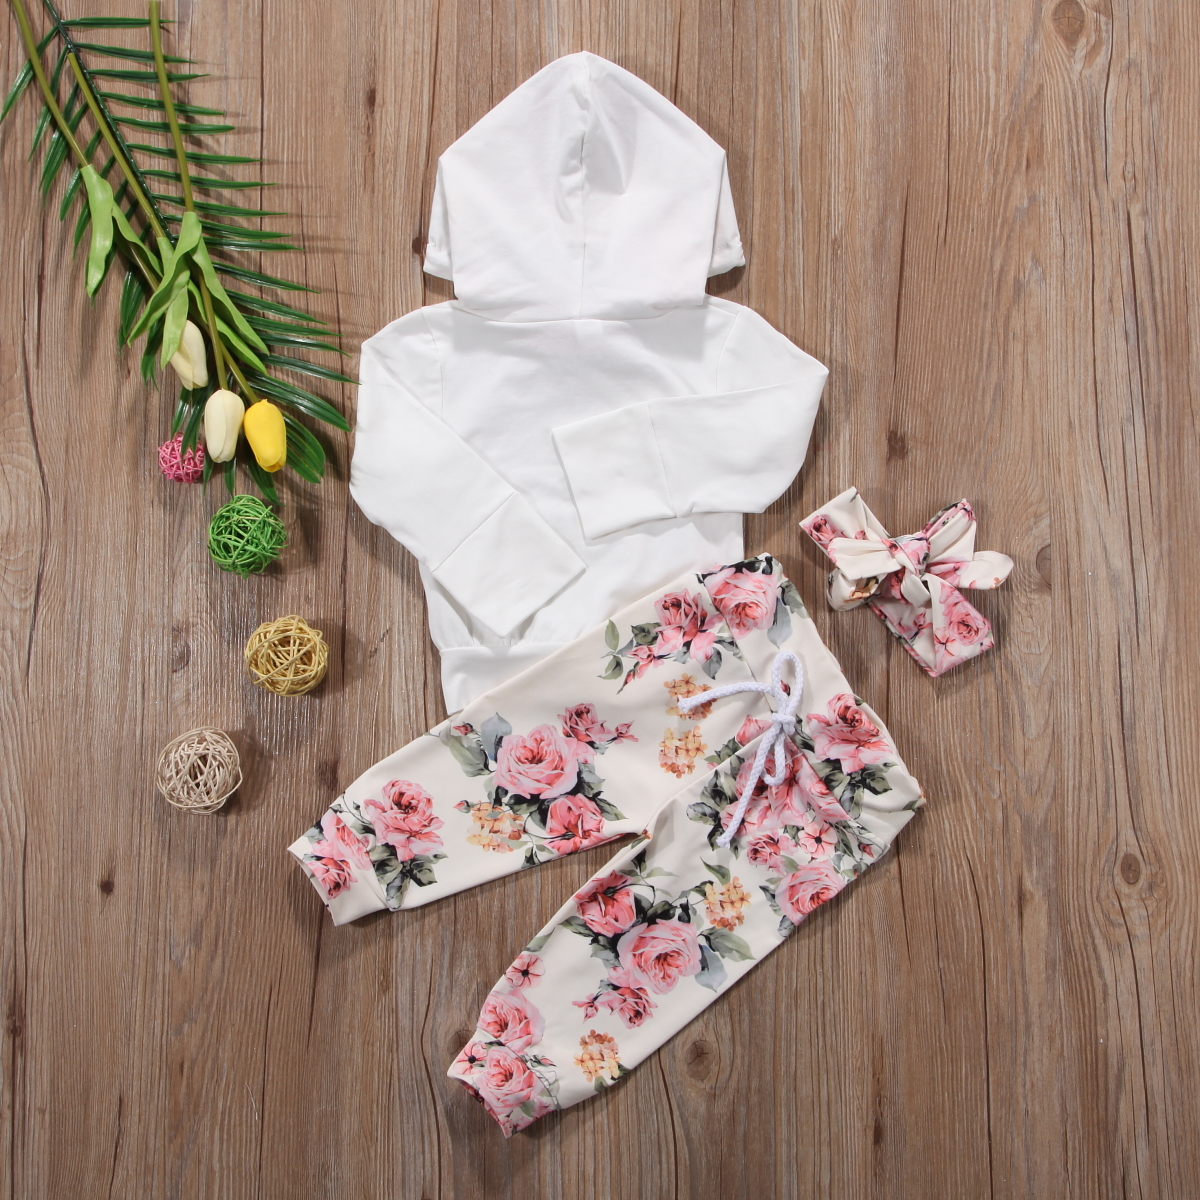 3PCS Baby Girls Tracksuit Clothes Floral Hooded Tops Long Pants Outfits Headband